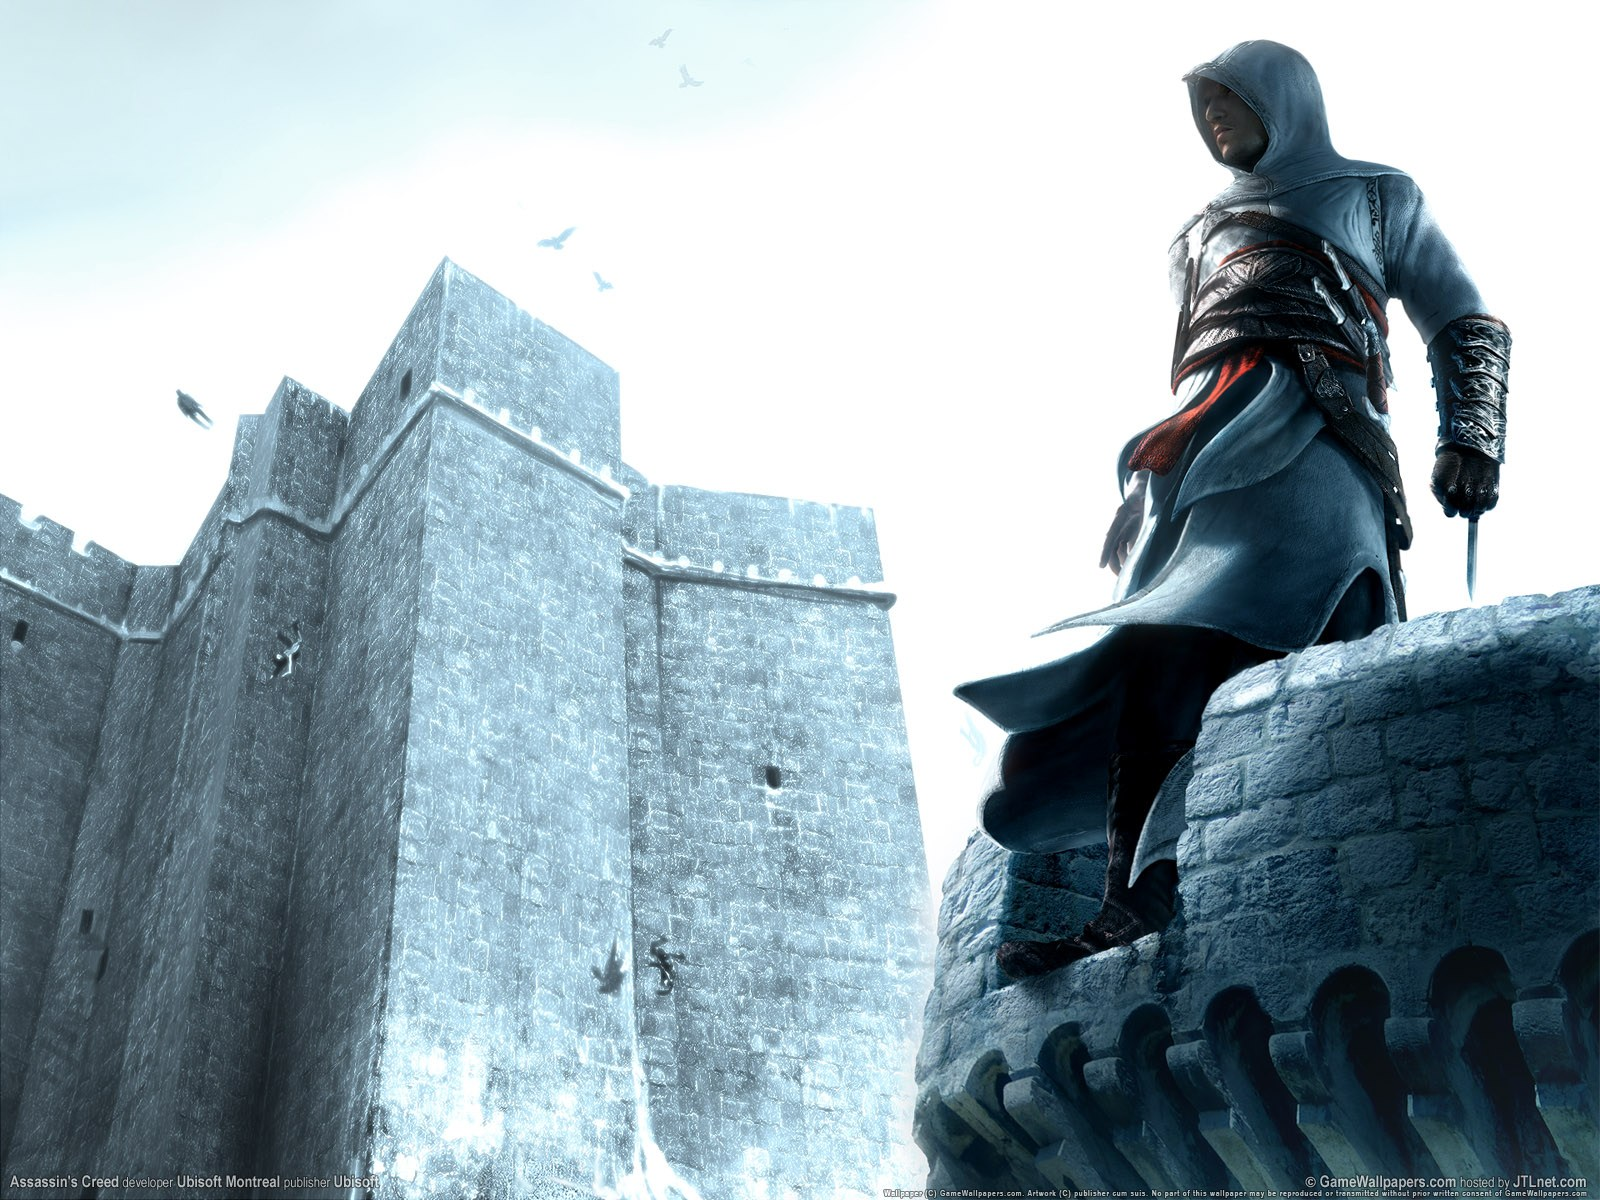 http://2.bp.blogspot.com/-YWNfdWS7IWo/UO1tfiKwscI/AAAAAAAAAJM/oFsRDnvItLA/s1600/assassins-creed-wallpaper.jpg